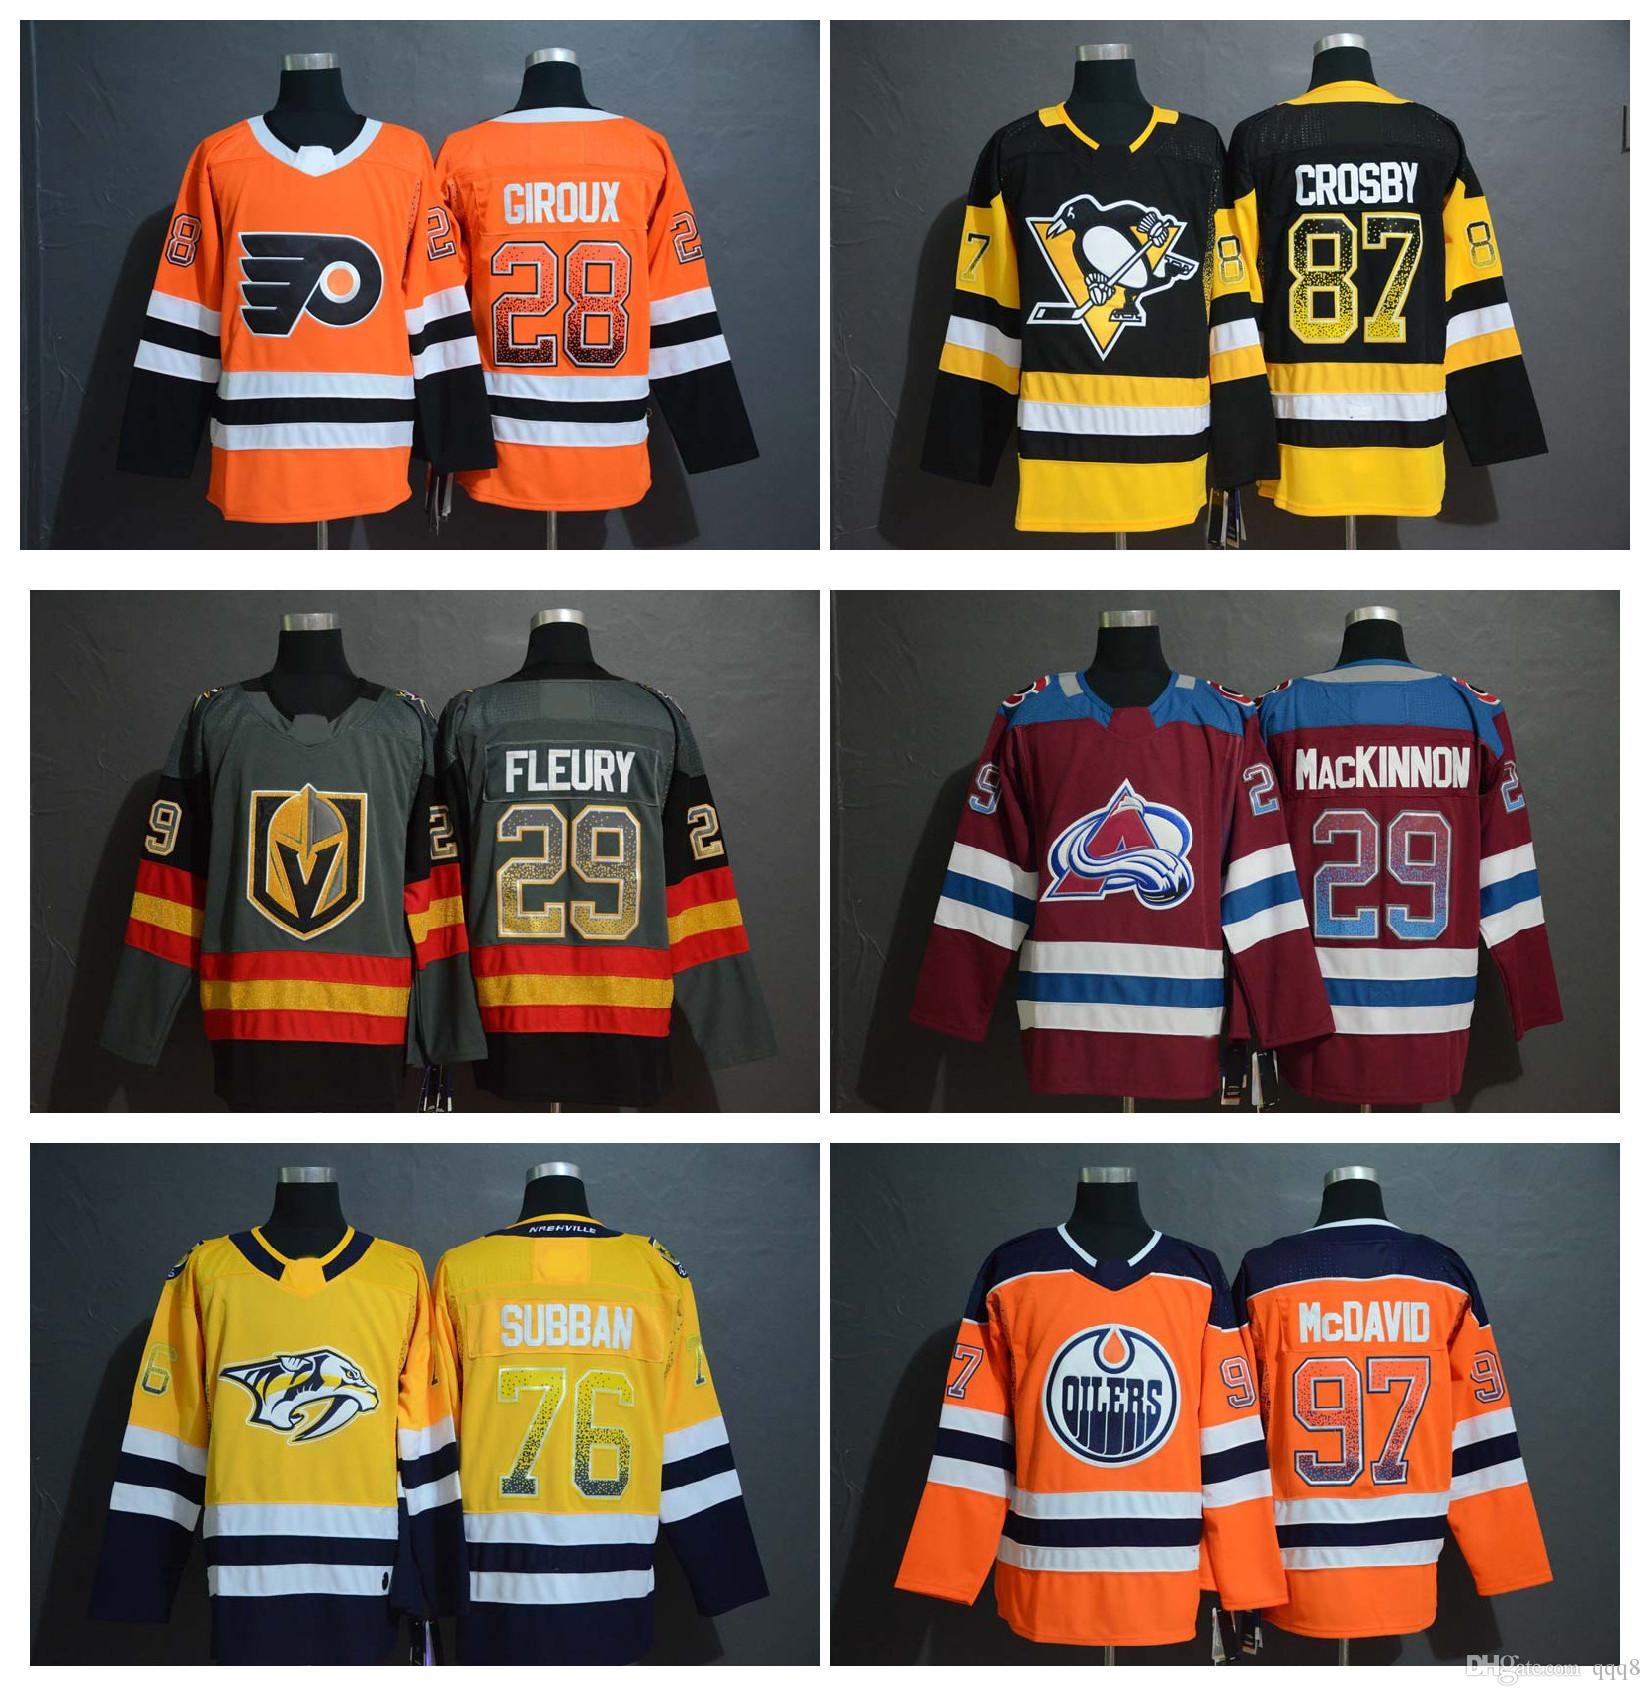 2019 NHL Sidney Crosby Jersey Claude Giroux Nathan MacKinnon 29 Marc Andre  Fleury 76 PK Subban 97 Connor McDavid Hockey Jerseys Gradient Color From  Qqq8 e44405cdb